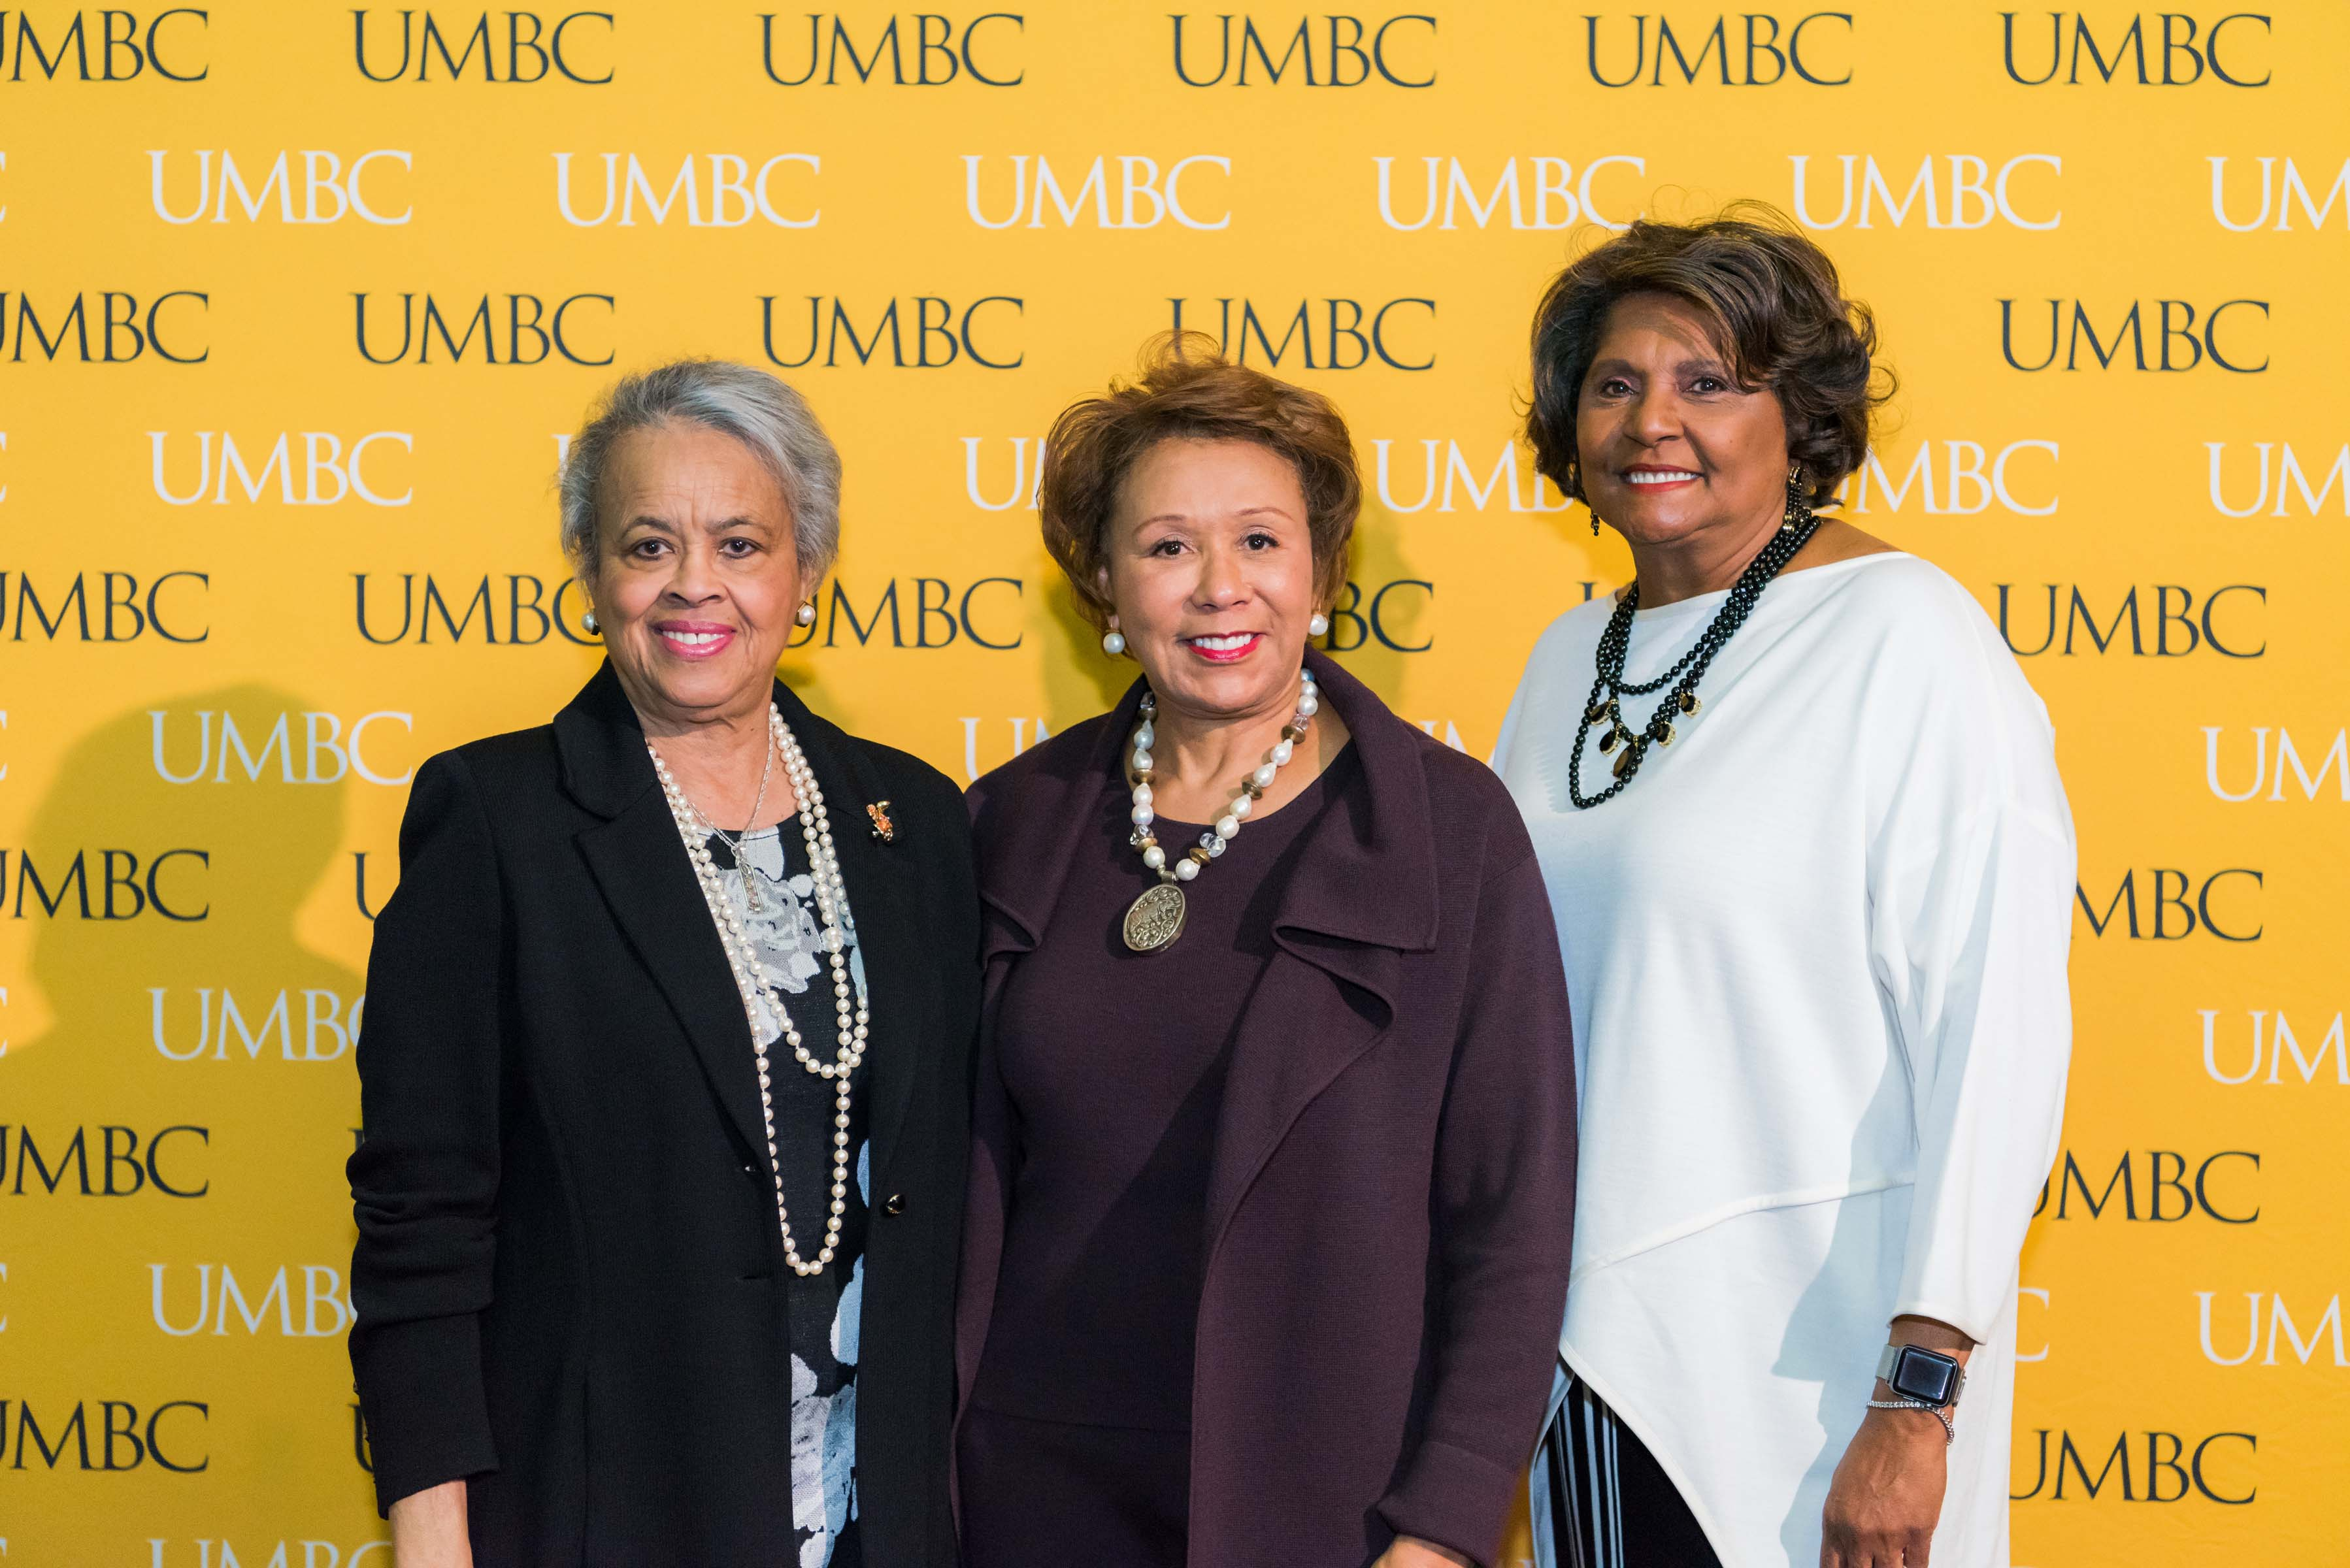 Two people and Jacqueline Hrabowski pose in front of the UMBC wall at the scholarship luncheon